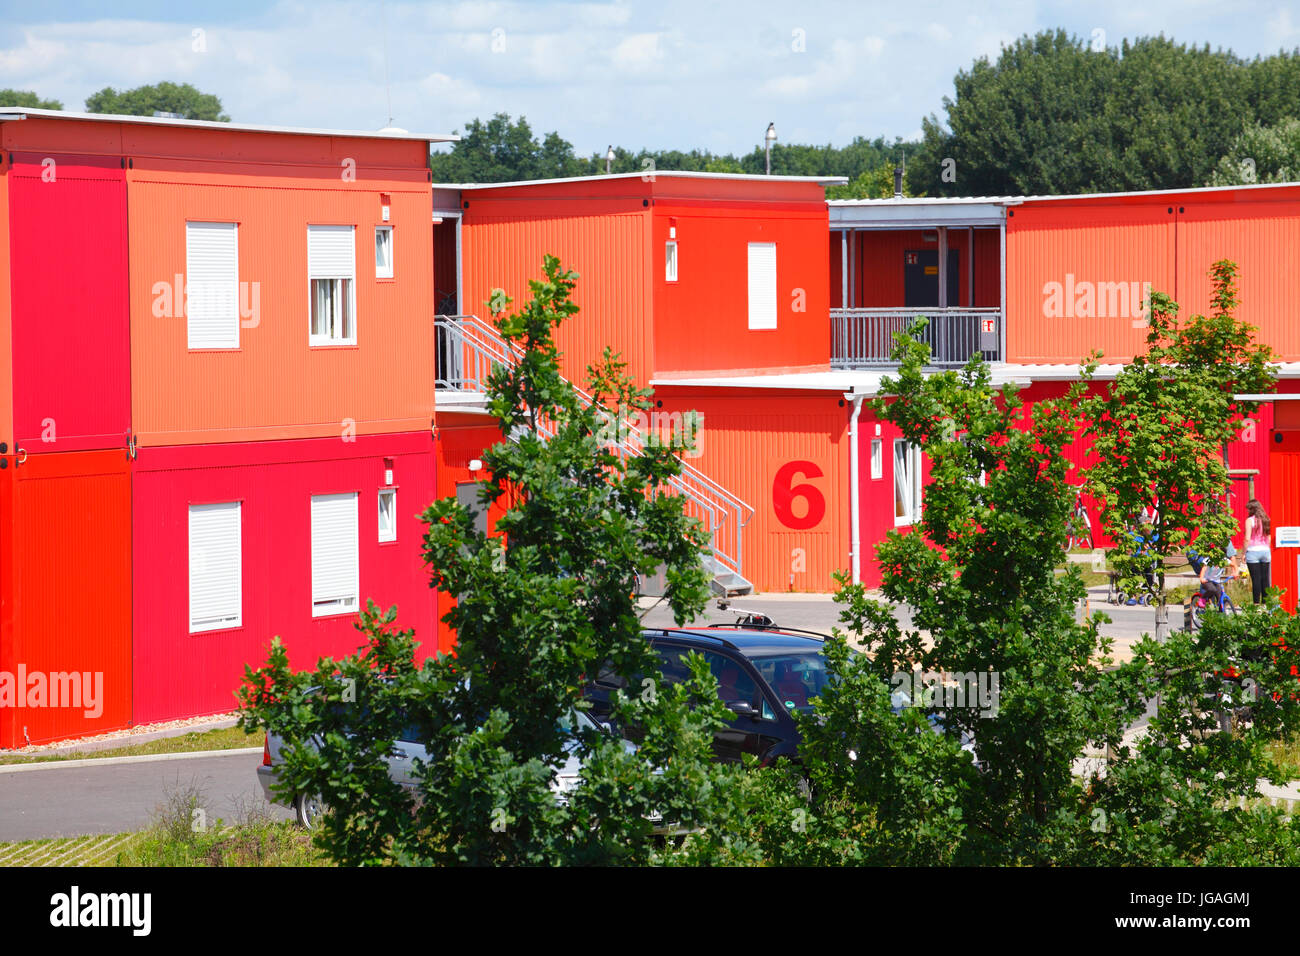 refugee hostel or accommodation in colorful Container, Bremen, Germany, europe  I Übergangswohneinrichtung - Stock Image